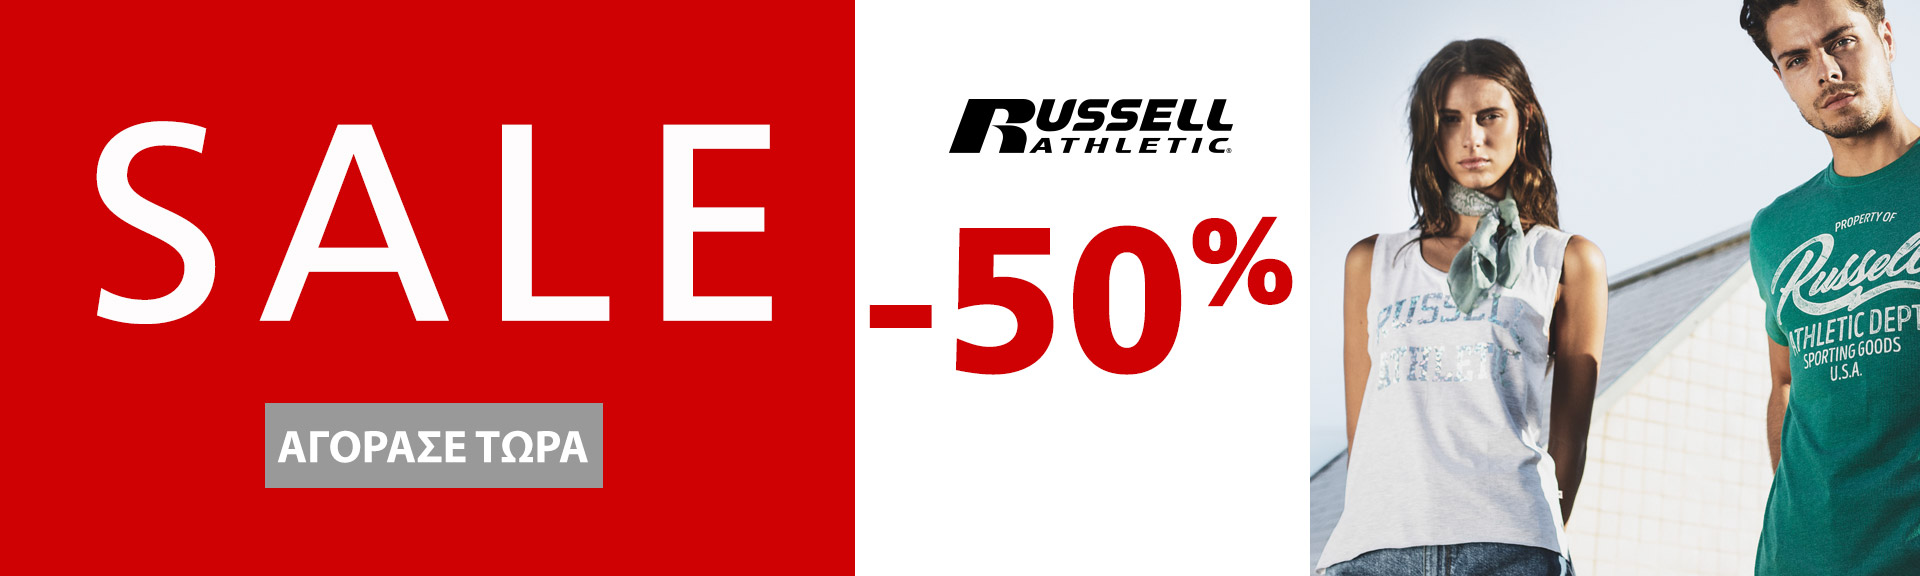 Russell 50%